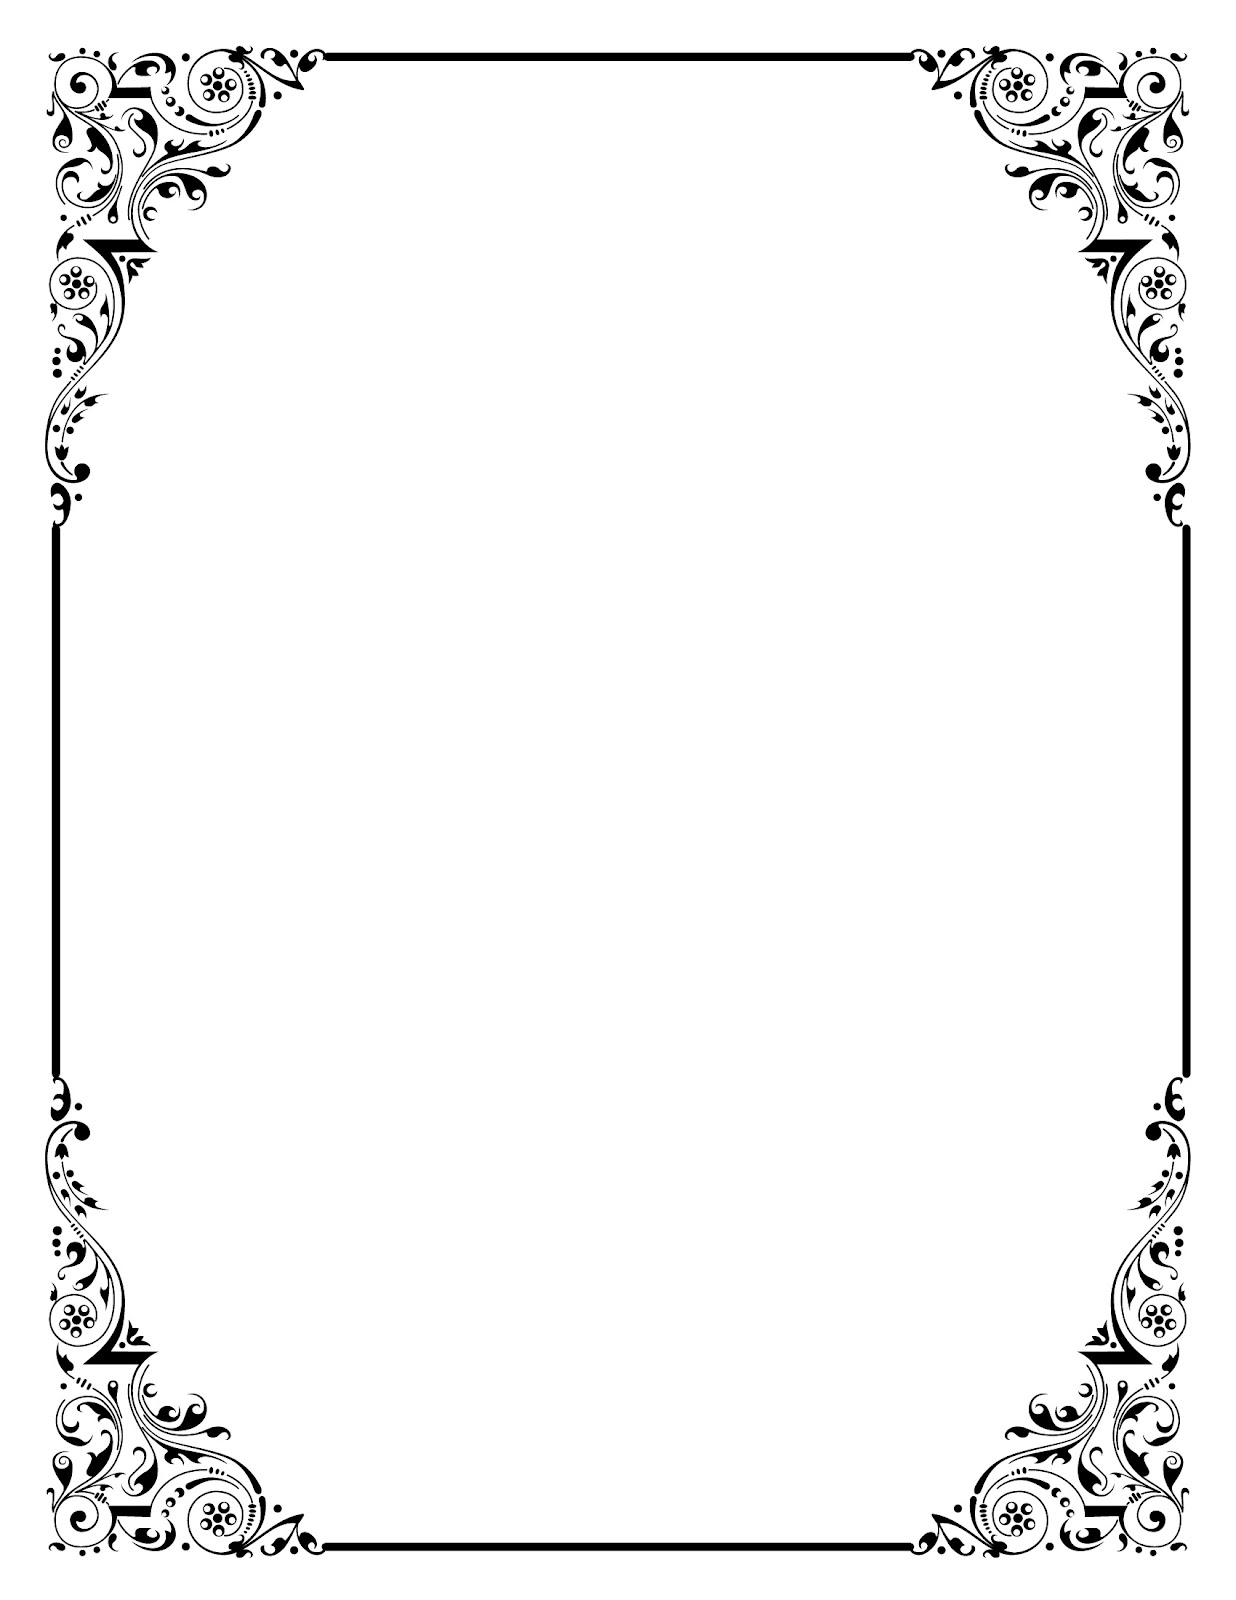 Elegant frame clip art - ClipartFest graphic royalty free stock